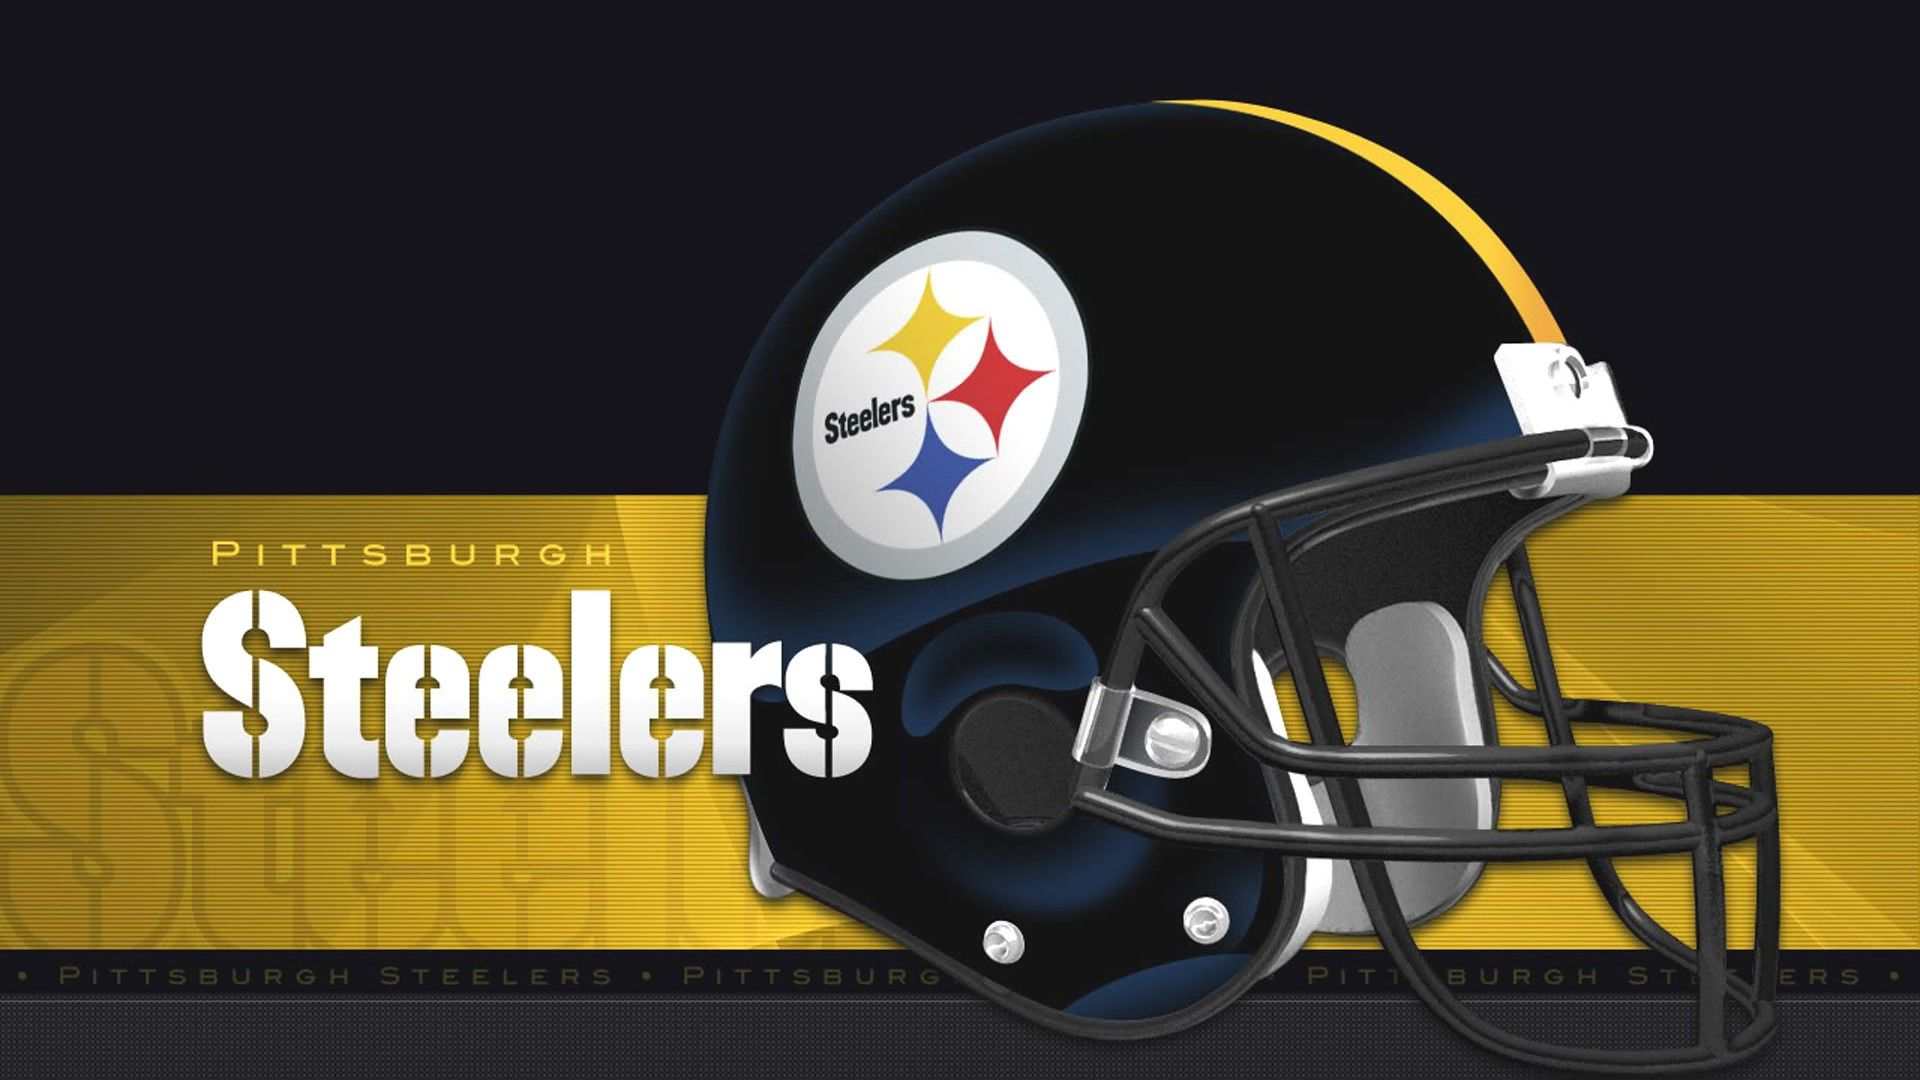 Pittsburgh Steelers Wallpaper For Mac Backgrounds